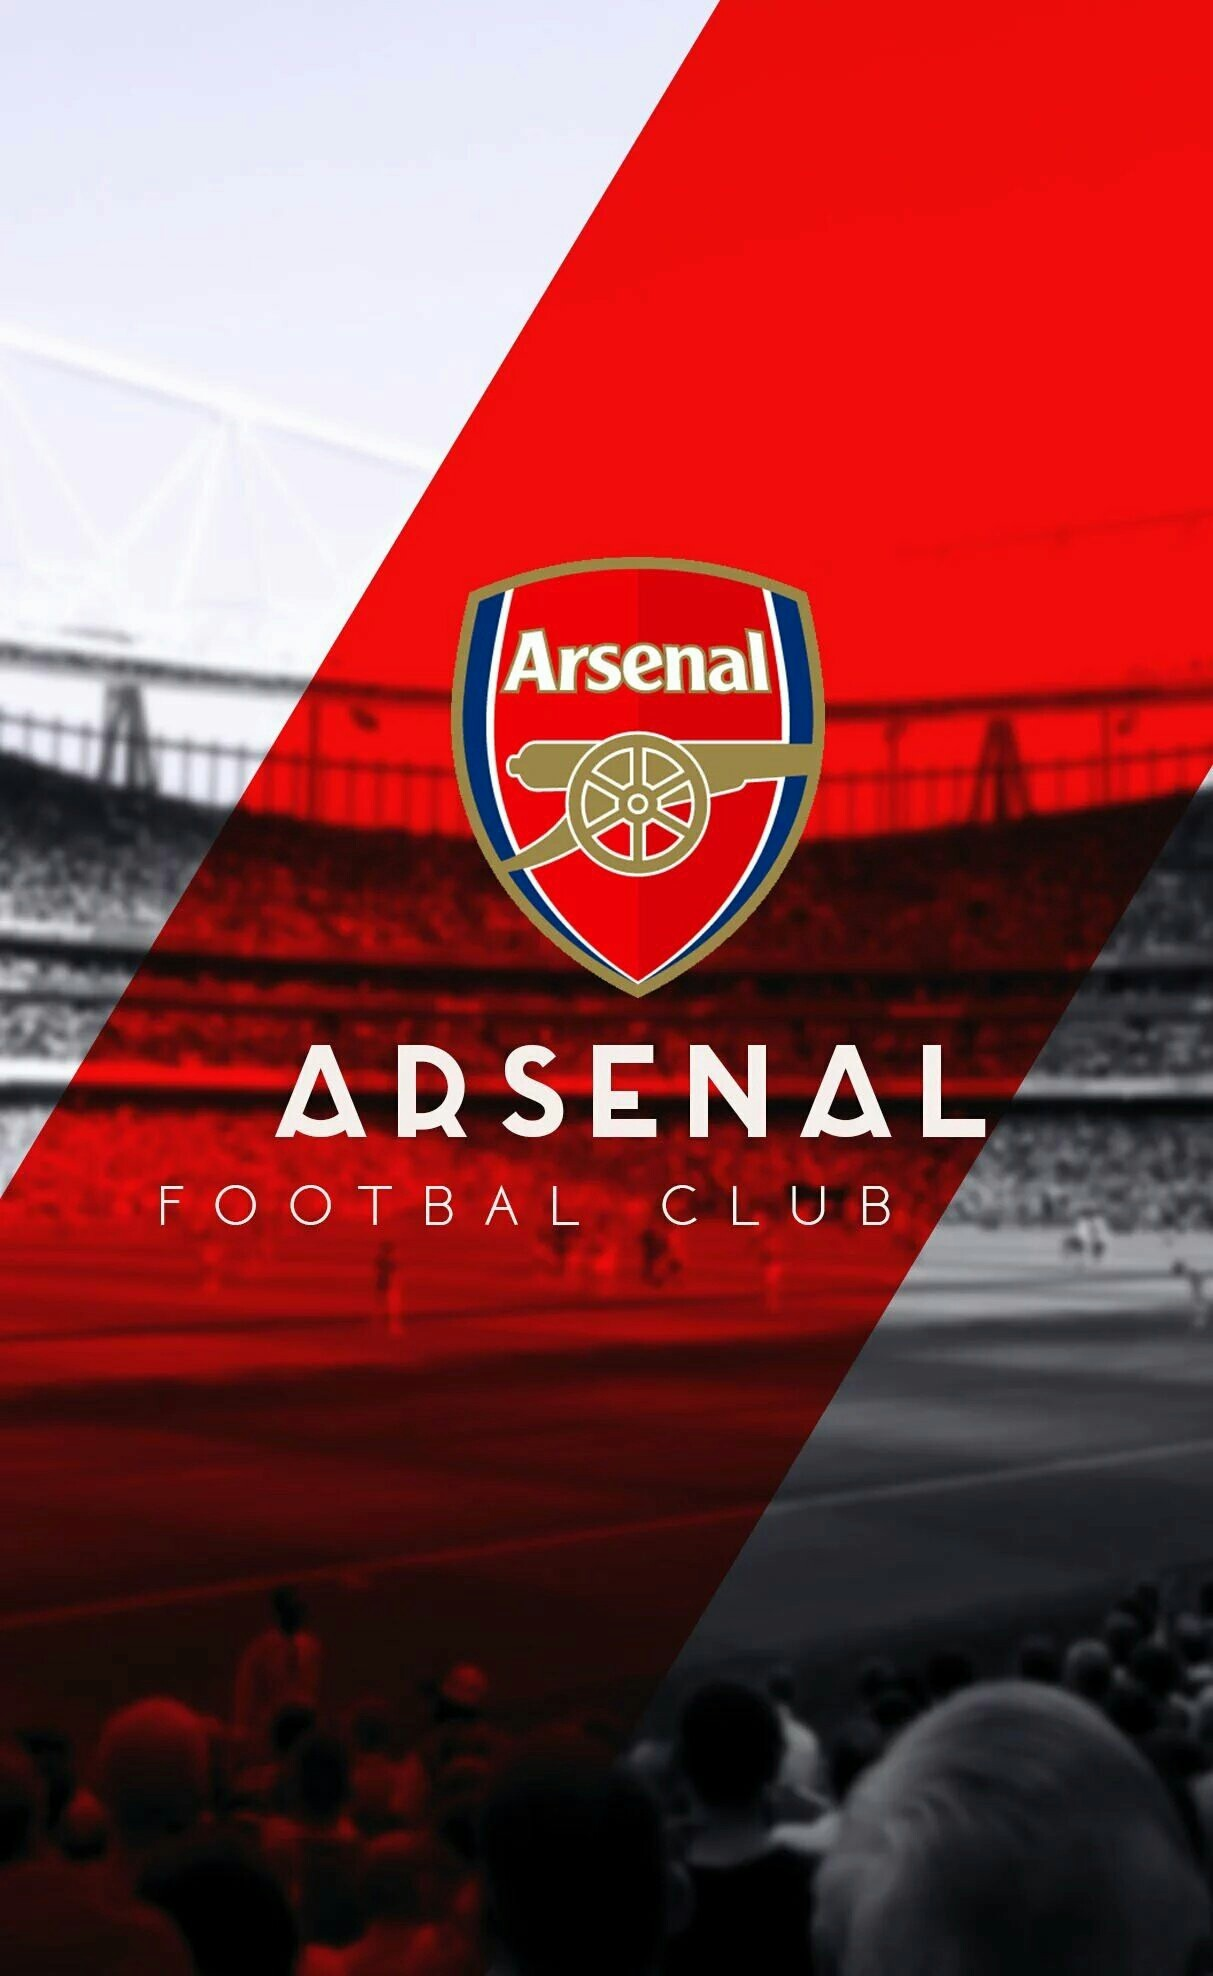 Manchester United Wallpaper Iphone X Arsenal Logo Wallpaper 2018 78 Images